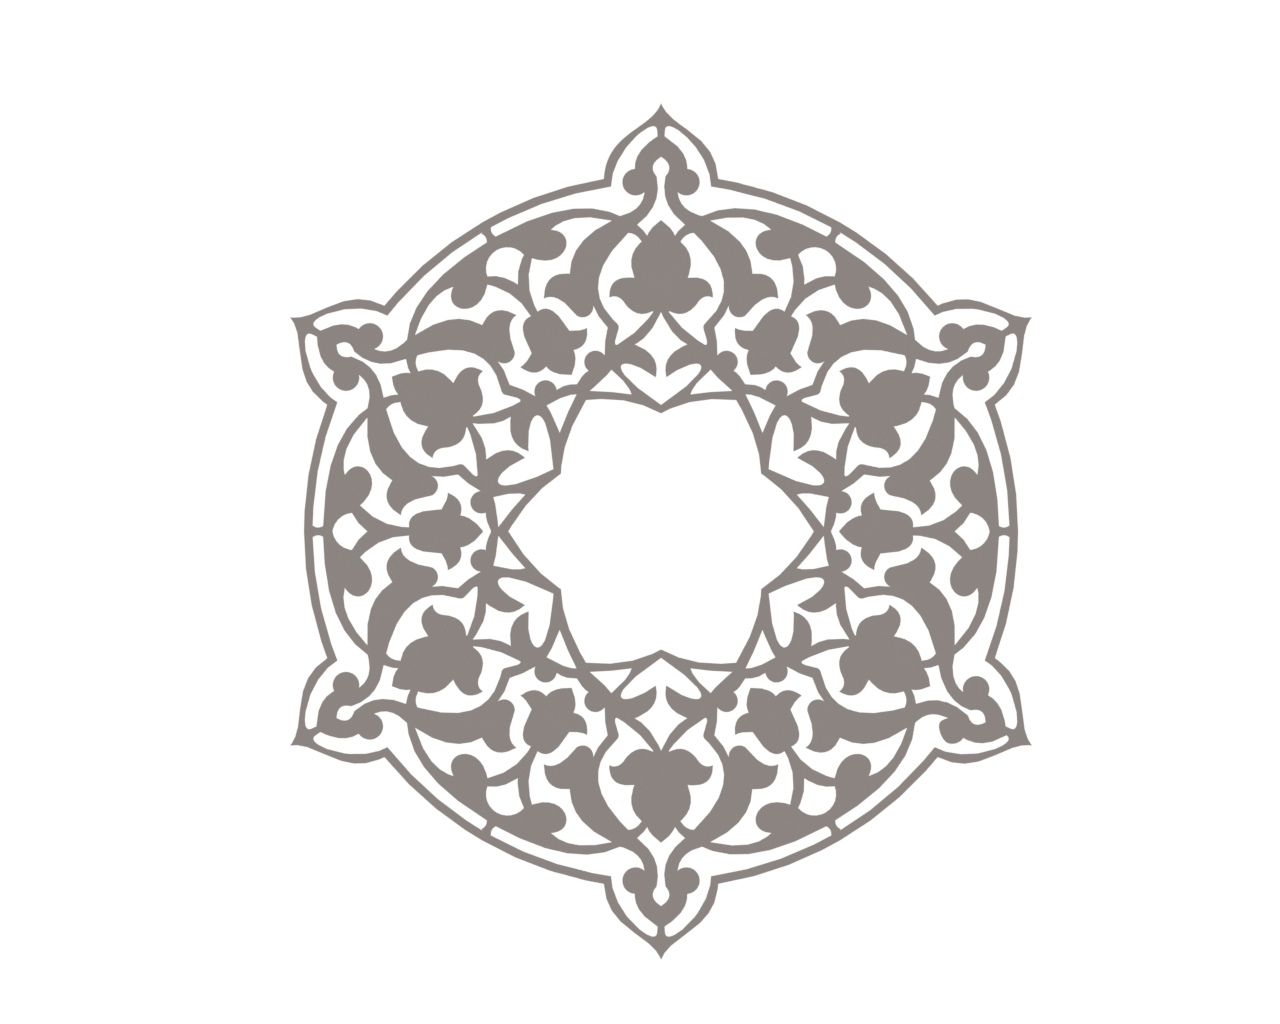 Circular Pattern In The Form Of A Mandala Free Vector